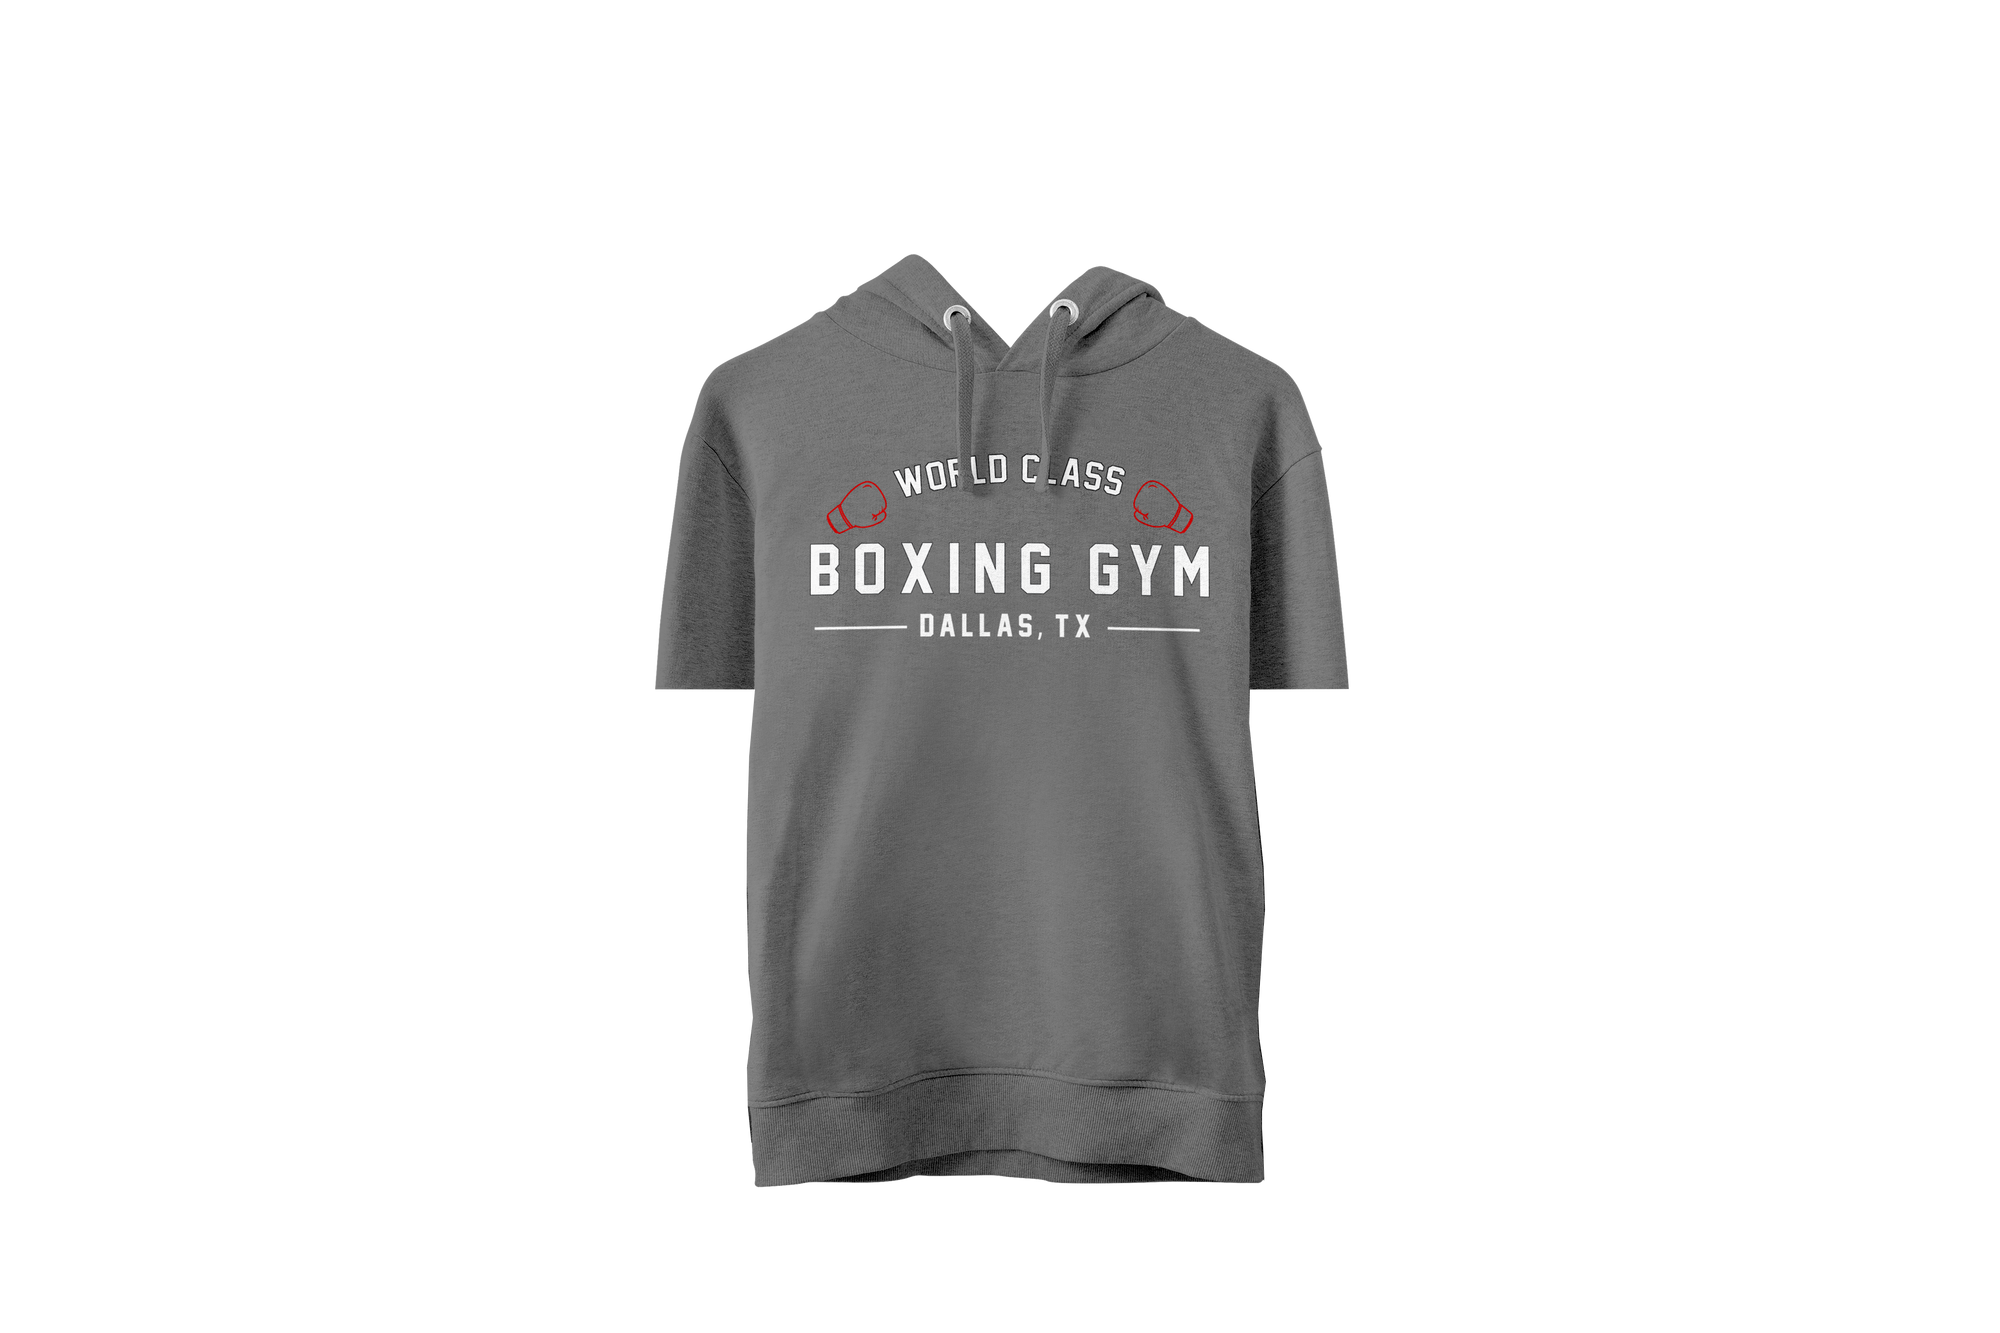 World Class Boxing Gym Short Sleeve Hoodie